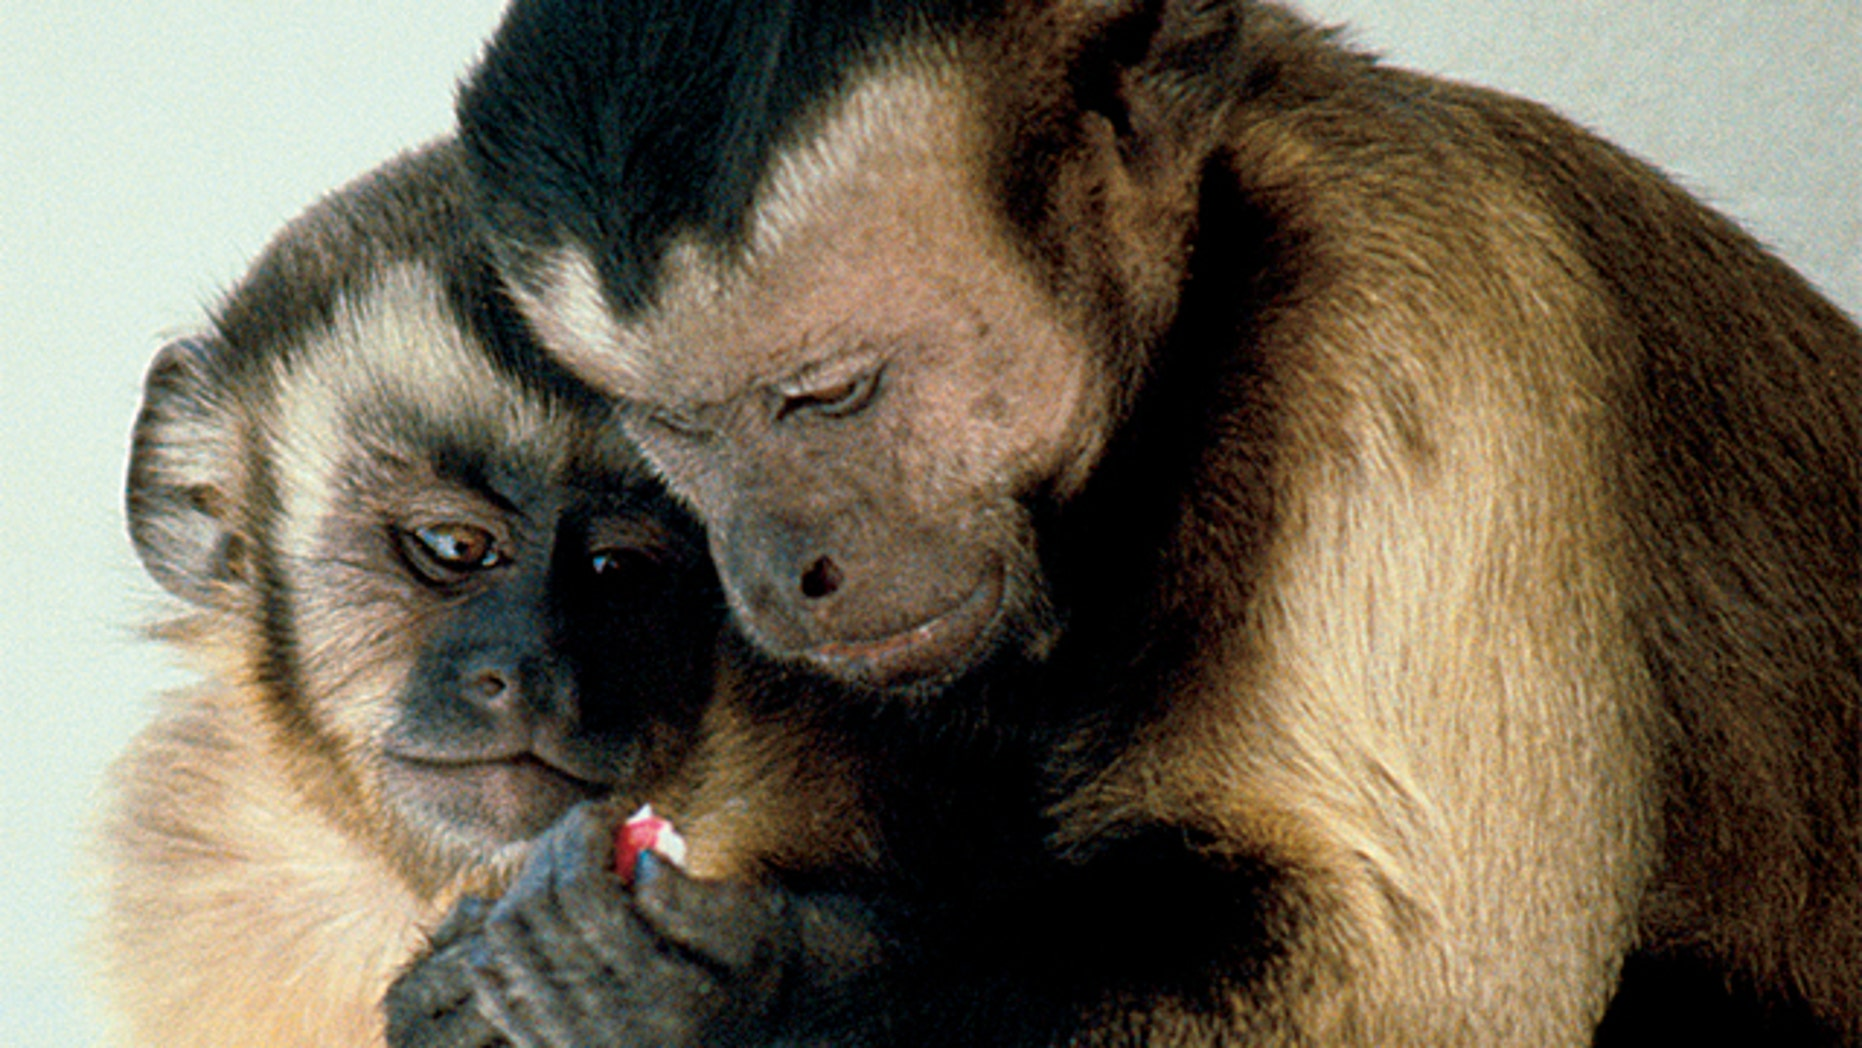 Advetising execs and scientists are experimenting with ads designed specifically to target capuchin monkeys like these.